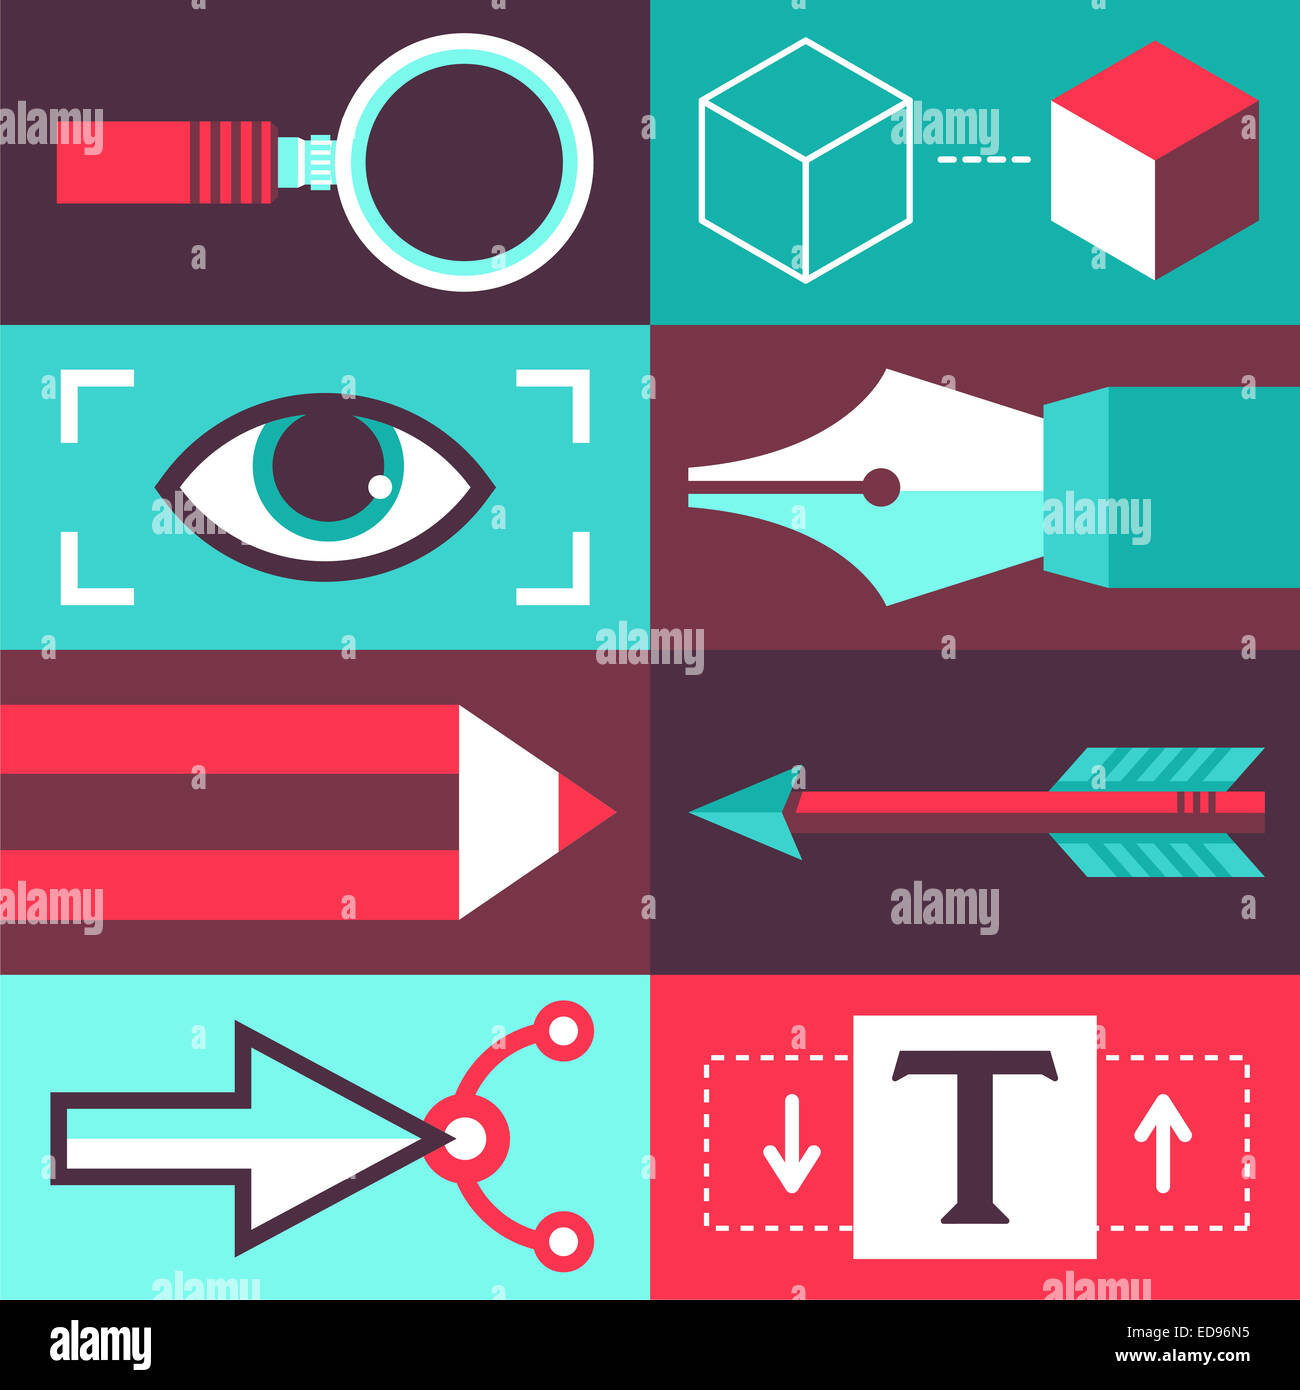 Graphic design concept in flat style - icons and sign with designer's tools - Stock Image